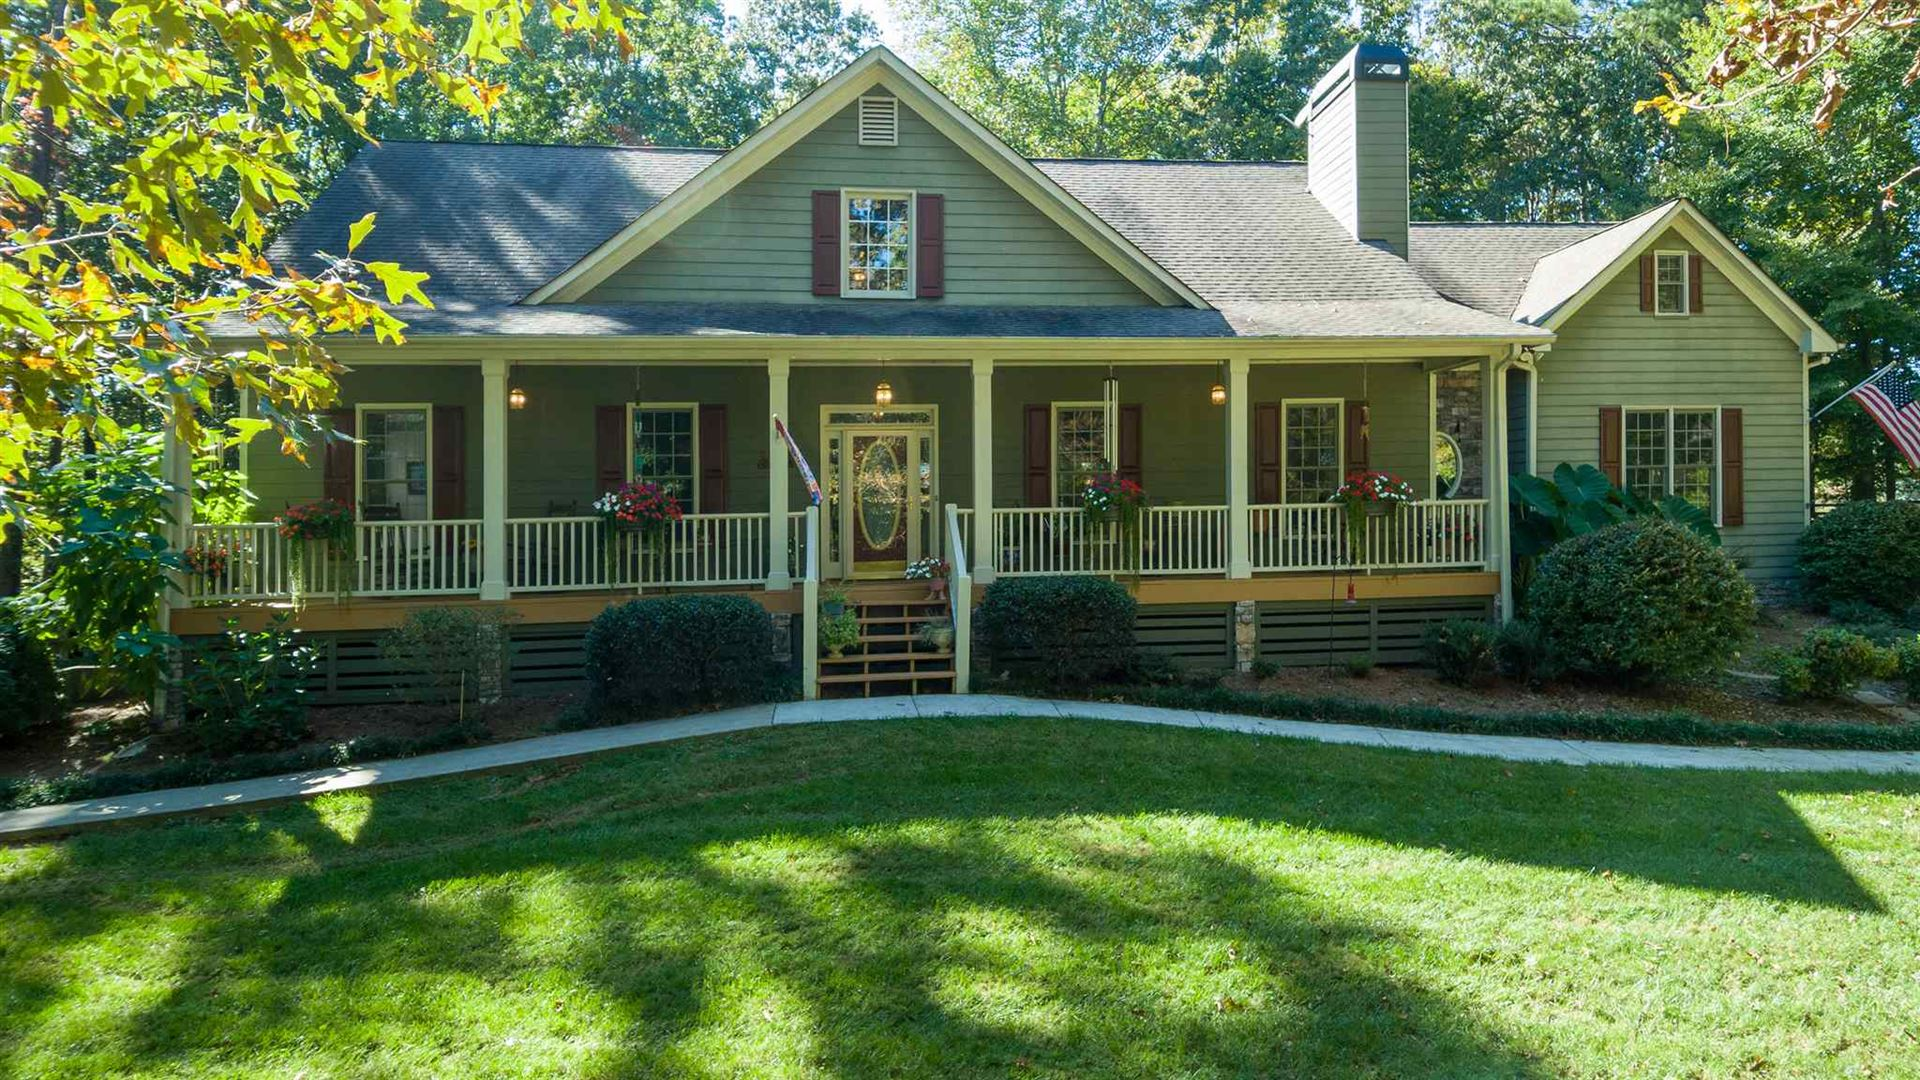 2130 Fate Conn Rd, Canton, GA 30114 - MLS#: 8874326